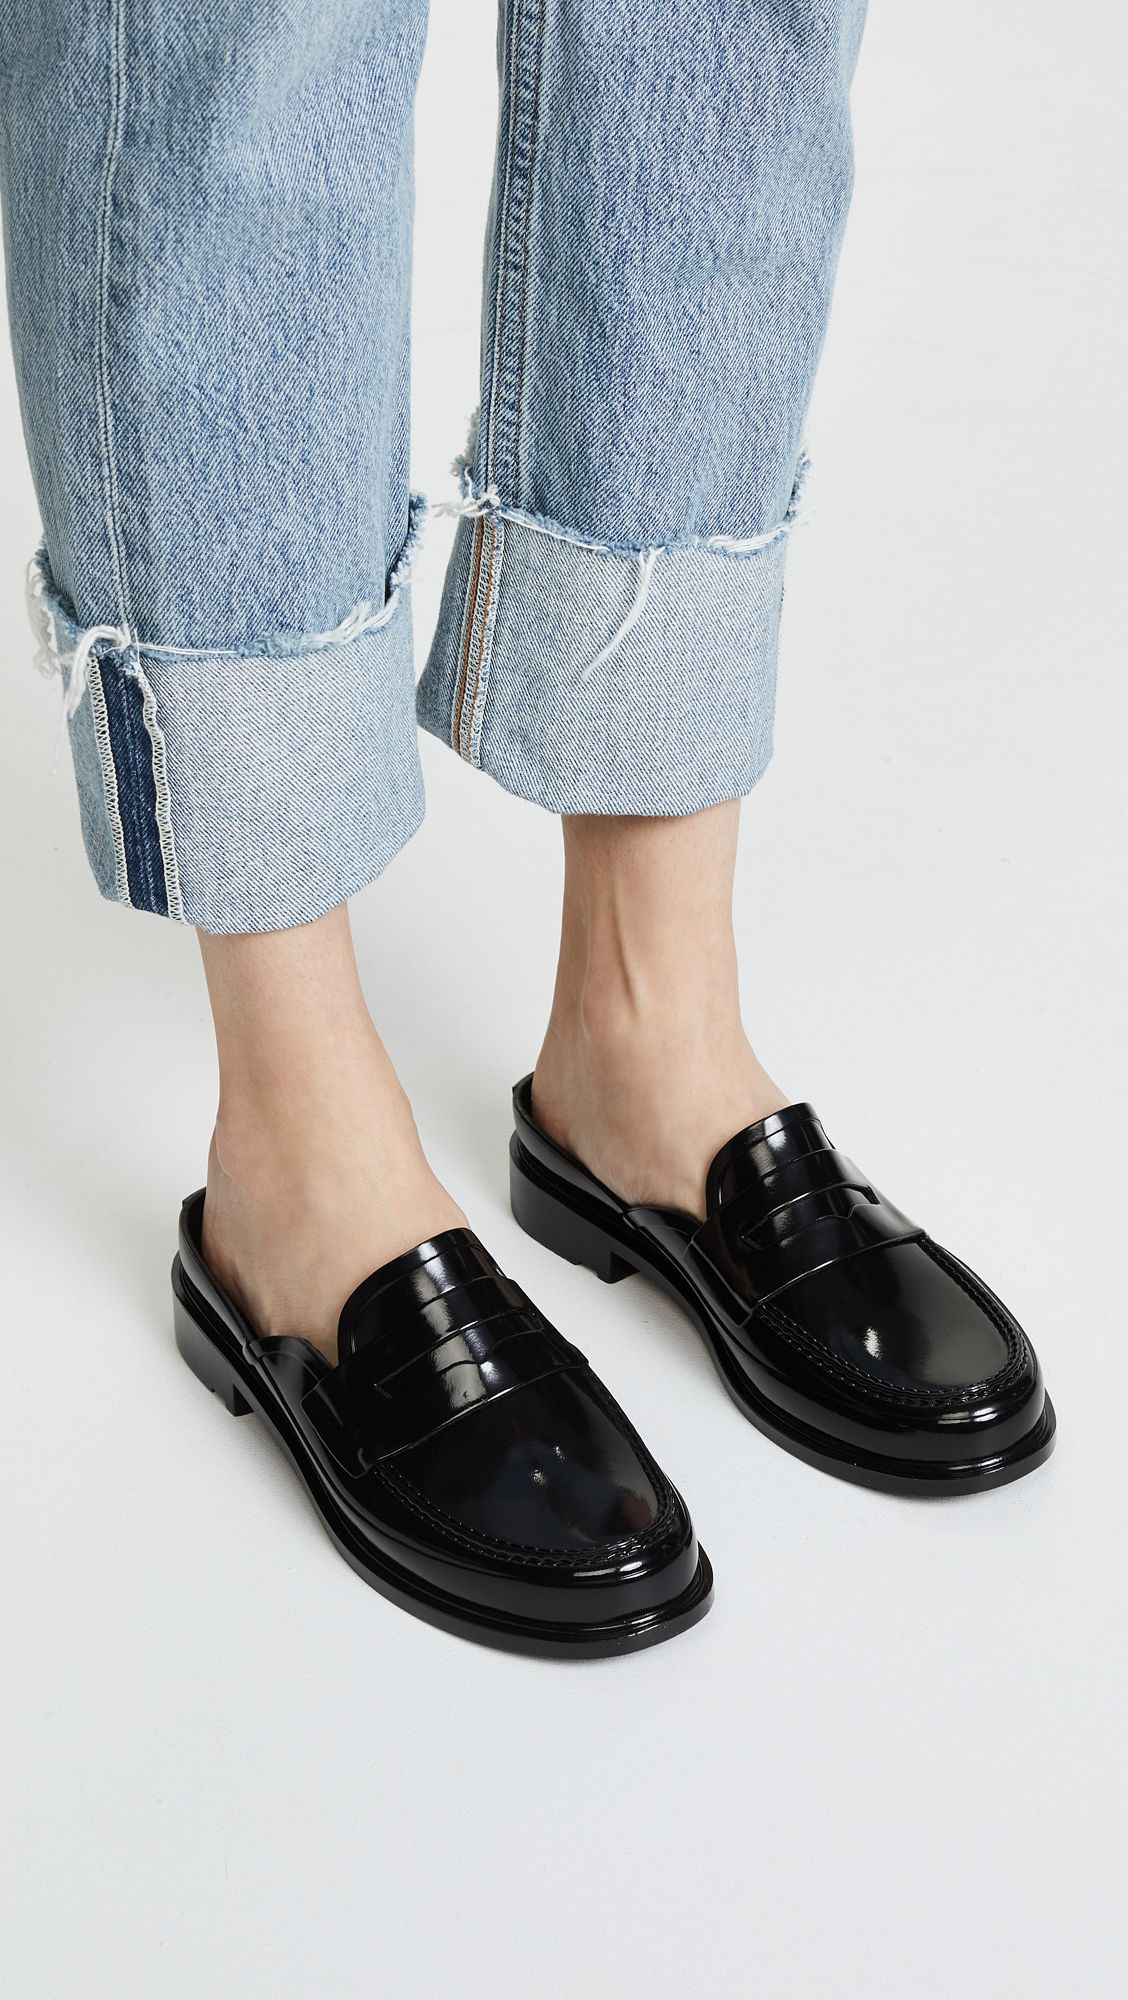 cdbf52cca Backless Gloss Penny Loafers in 2019 | BUY | Penny loafers, Hunter ...